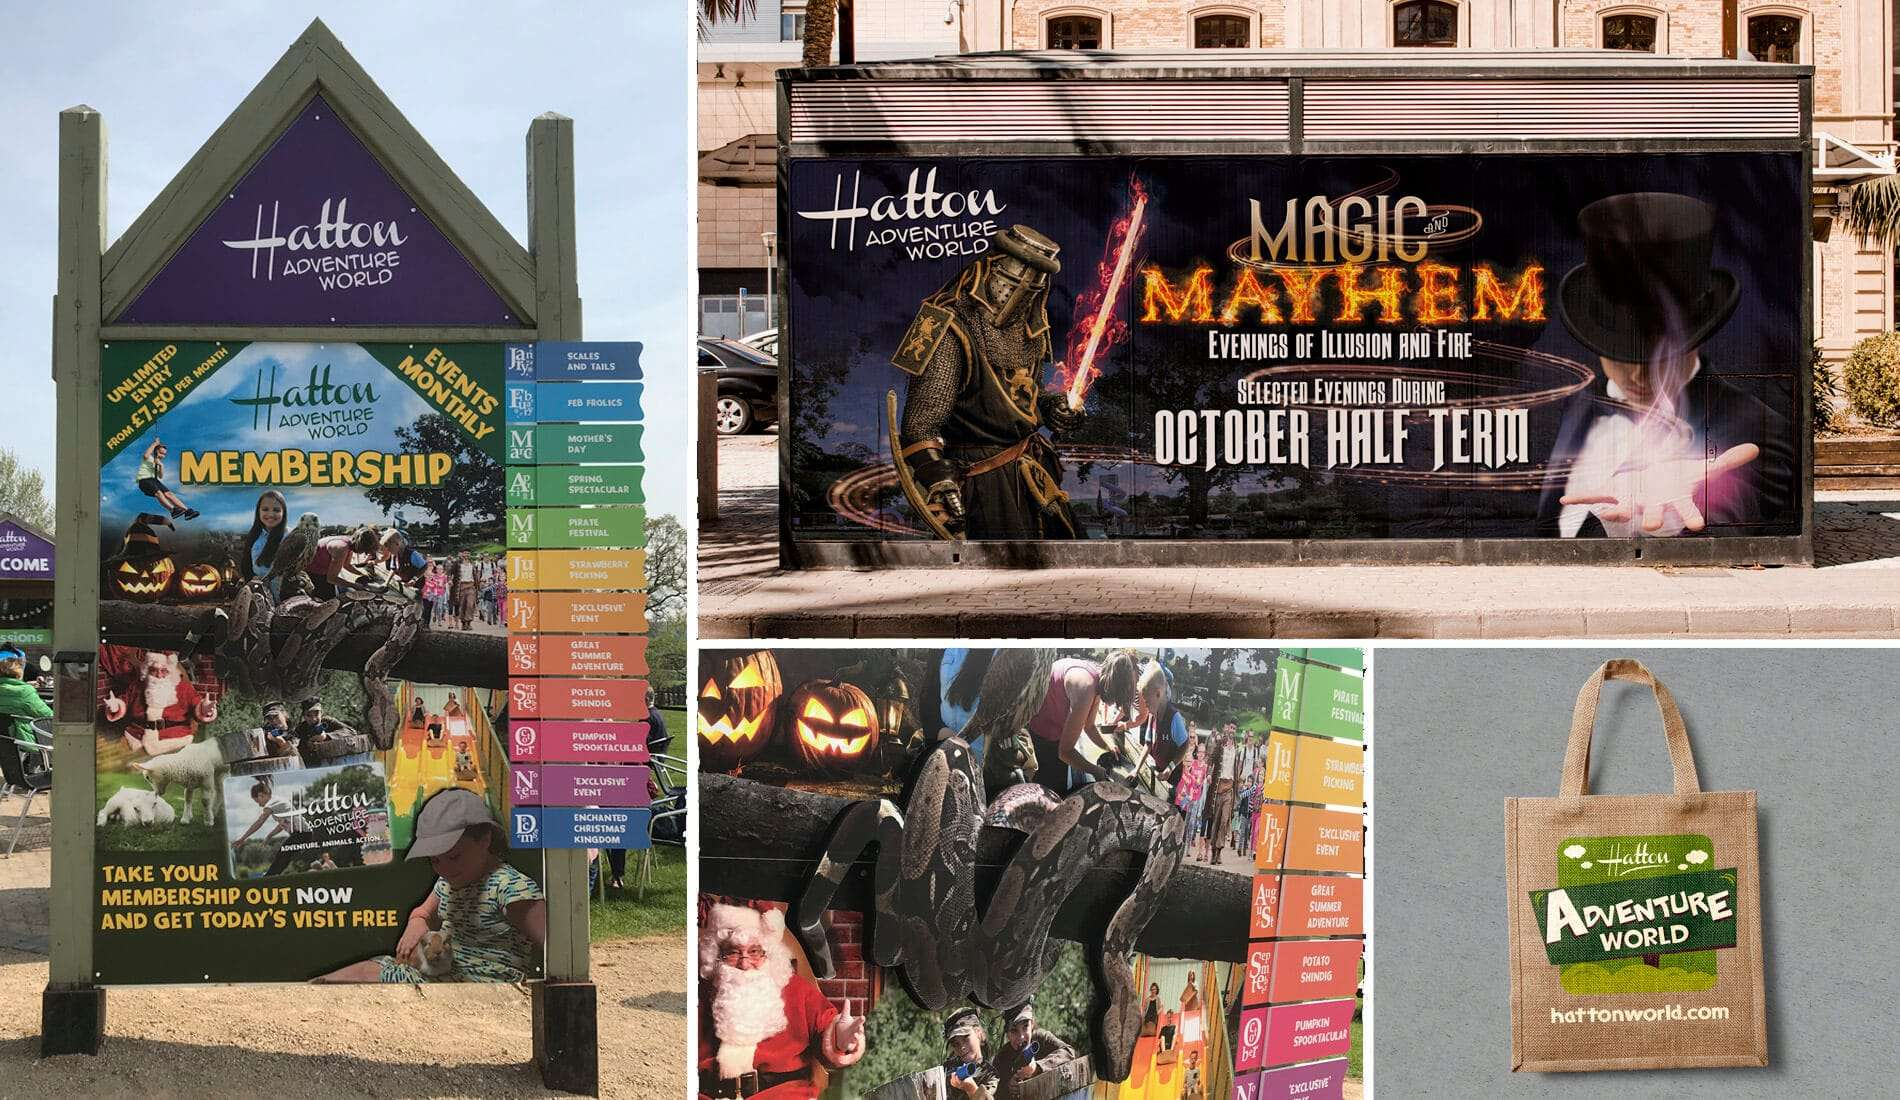 Signage created and designed for Hatton Adventure World colourful imagery and a tote bag